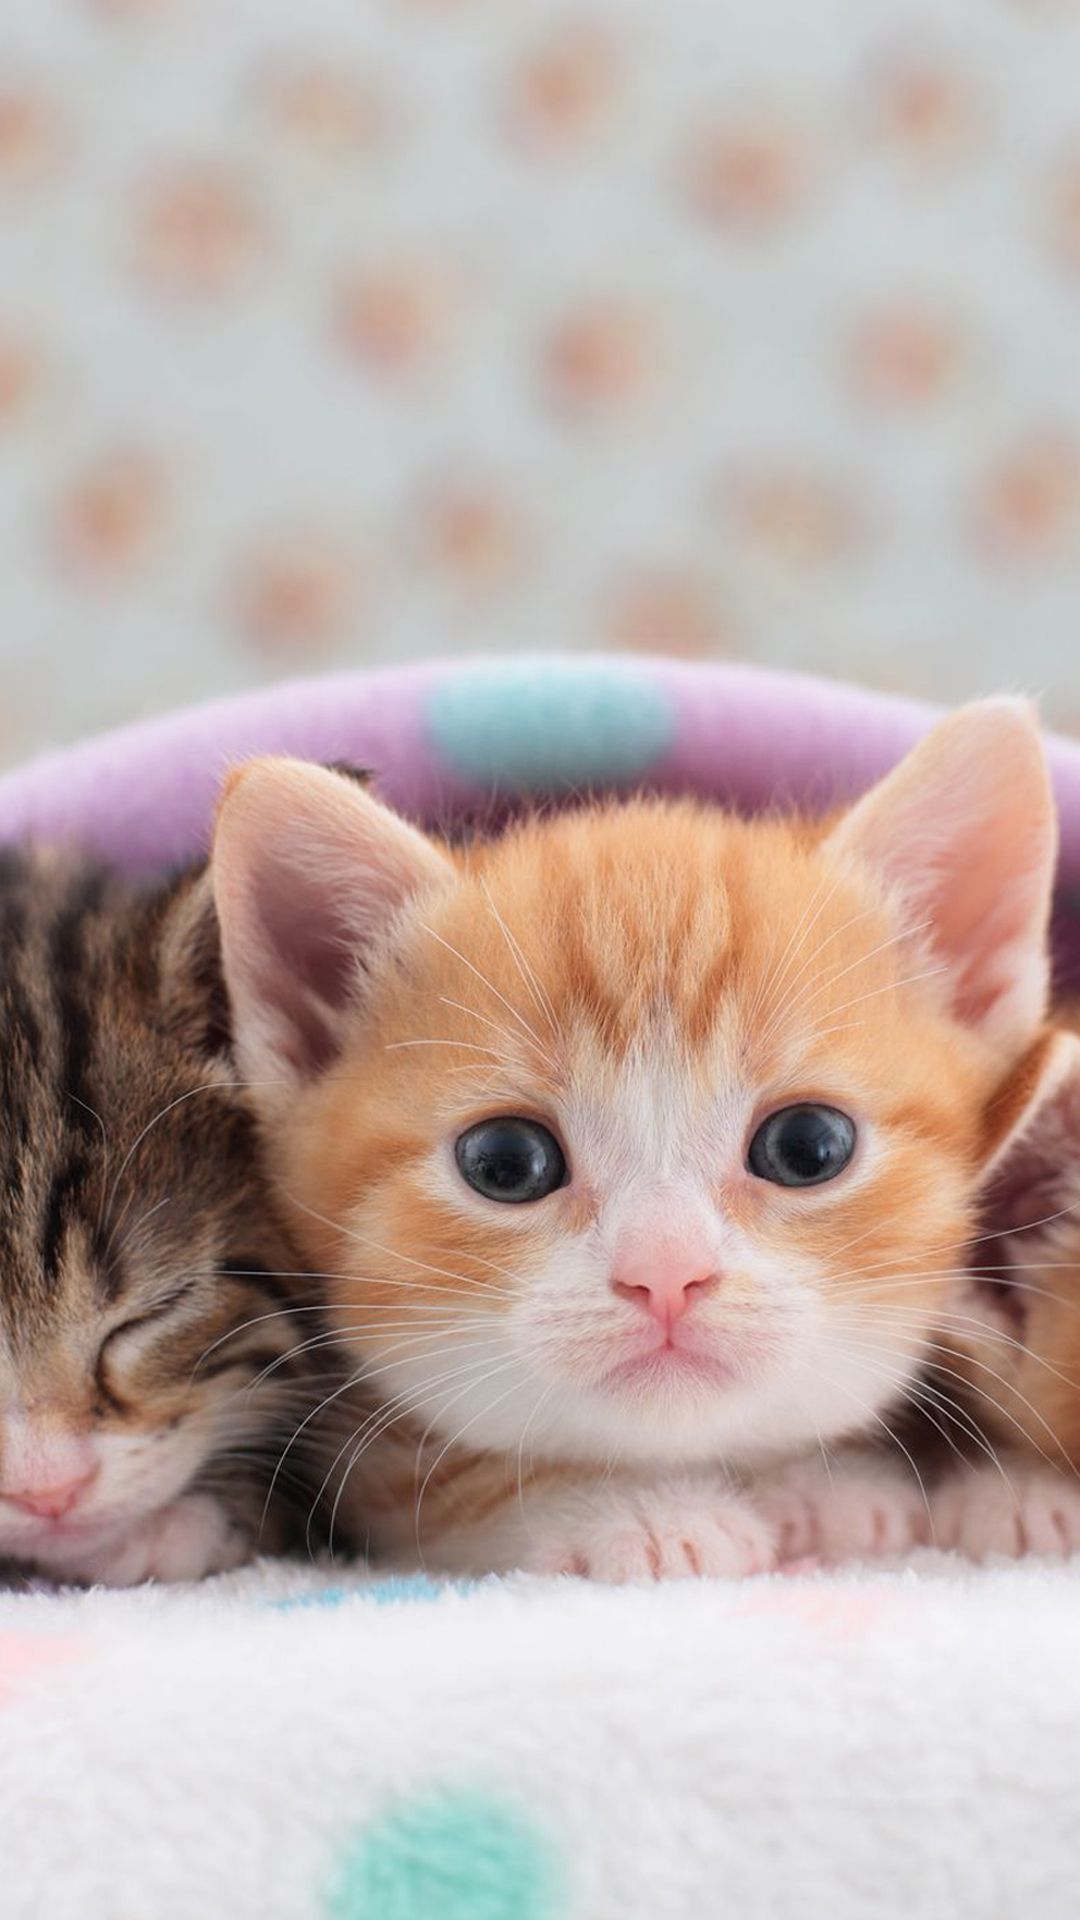 Kitten Cat Background Image In 2020 Cat Background Cats And Kittens Cats